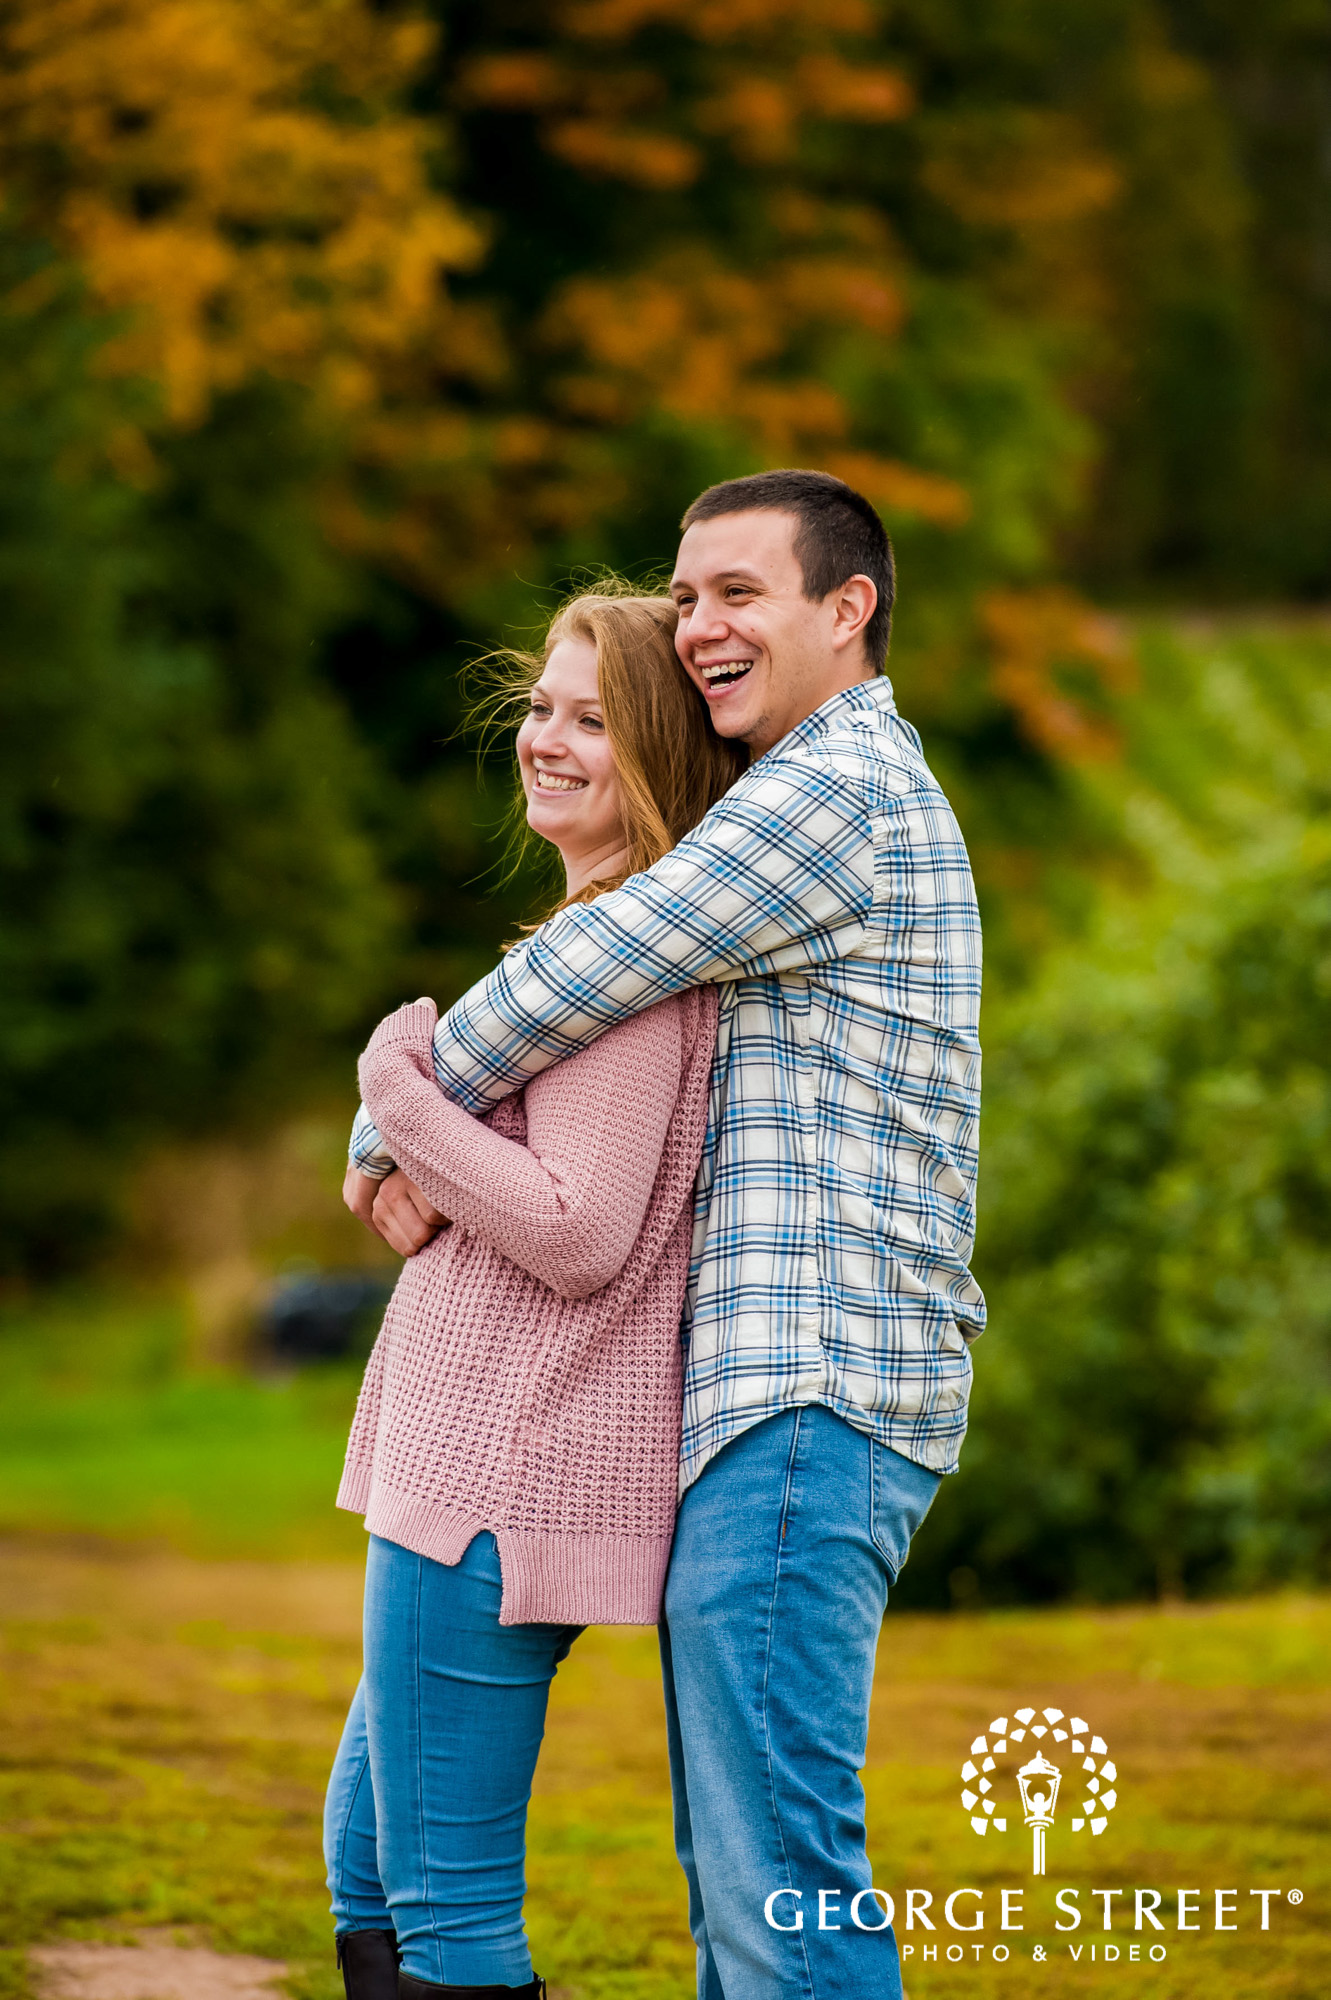 lyman orchards cute greenery sweater hartford engagement photography